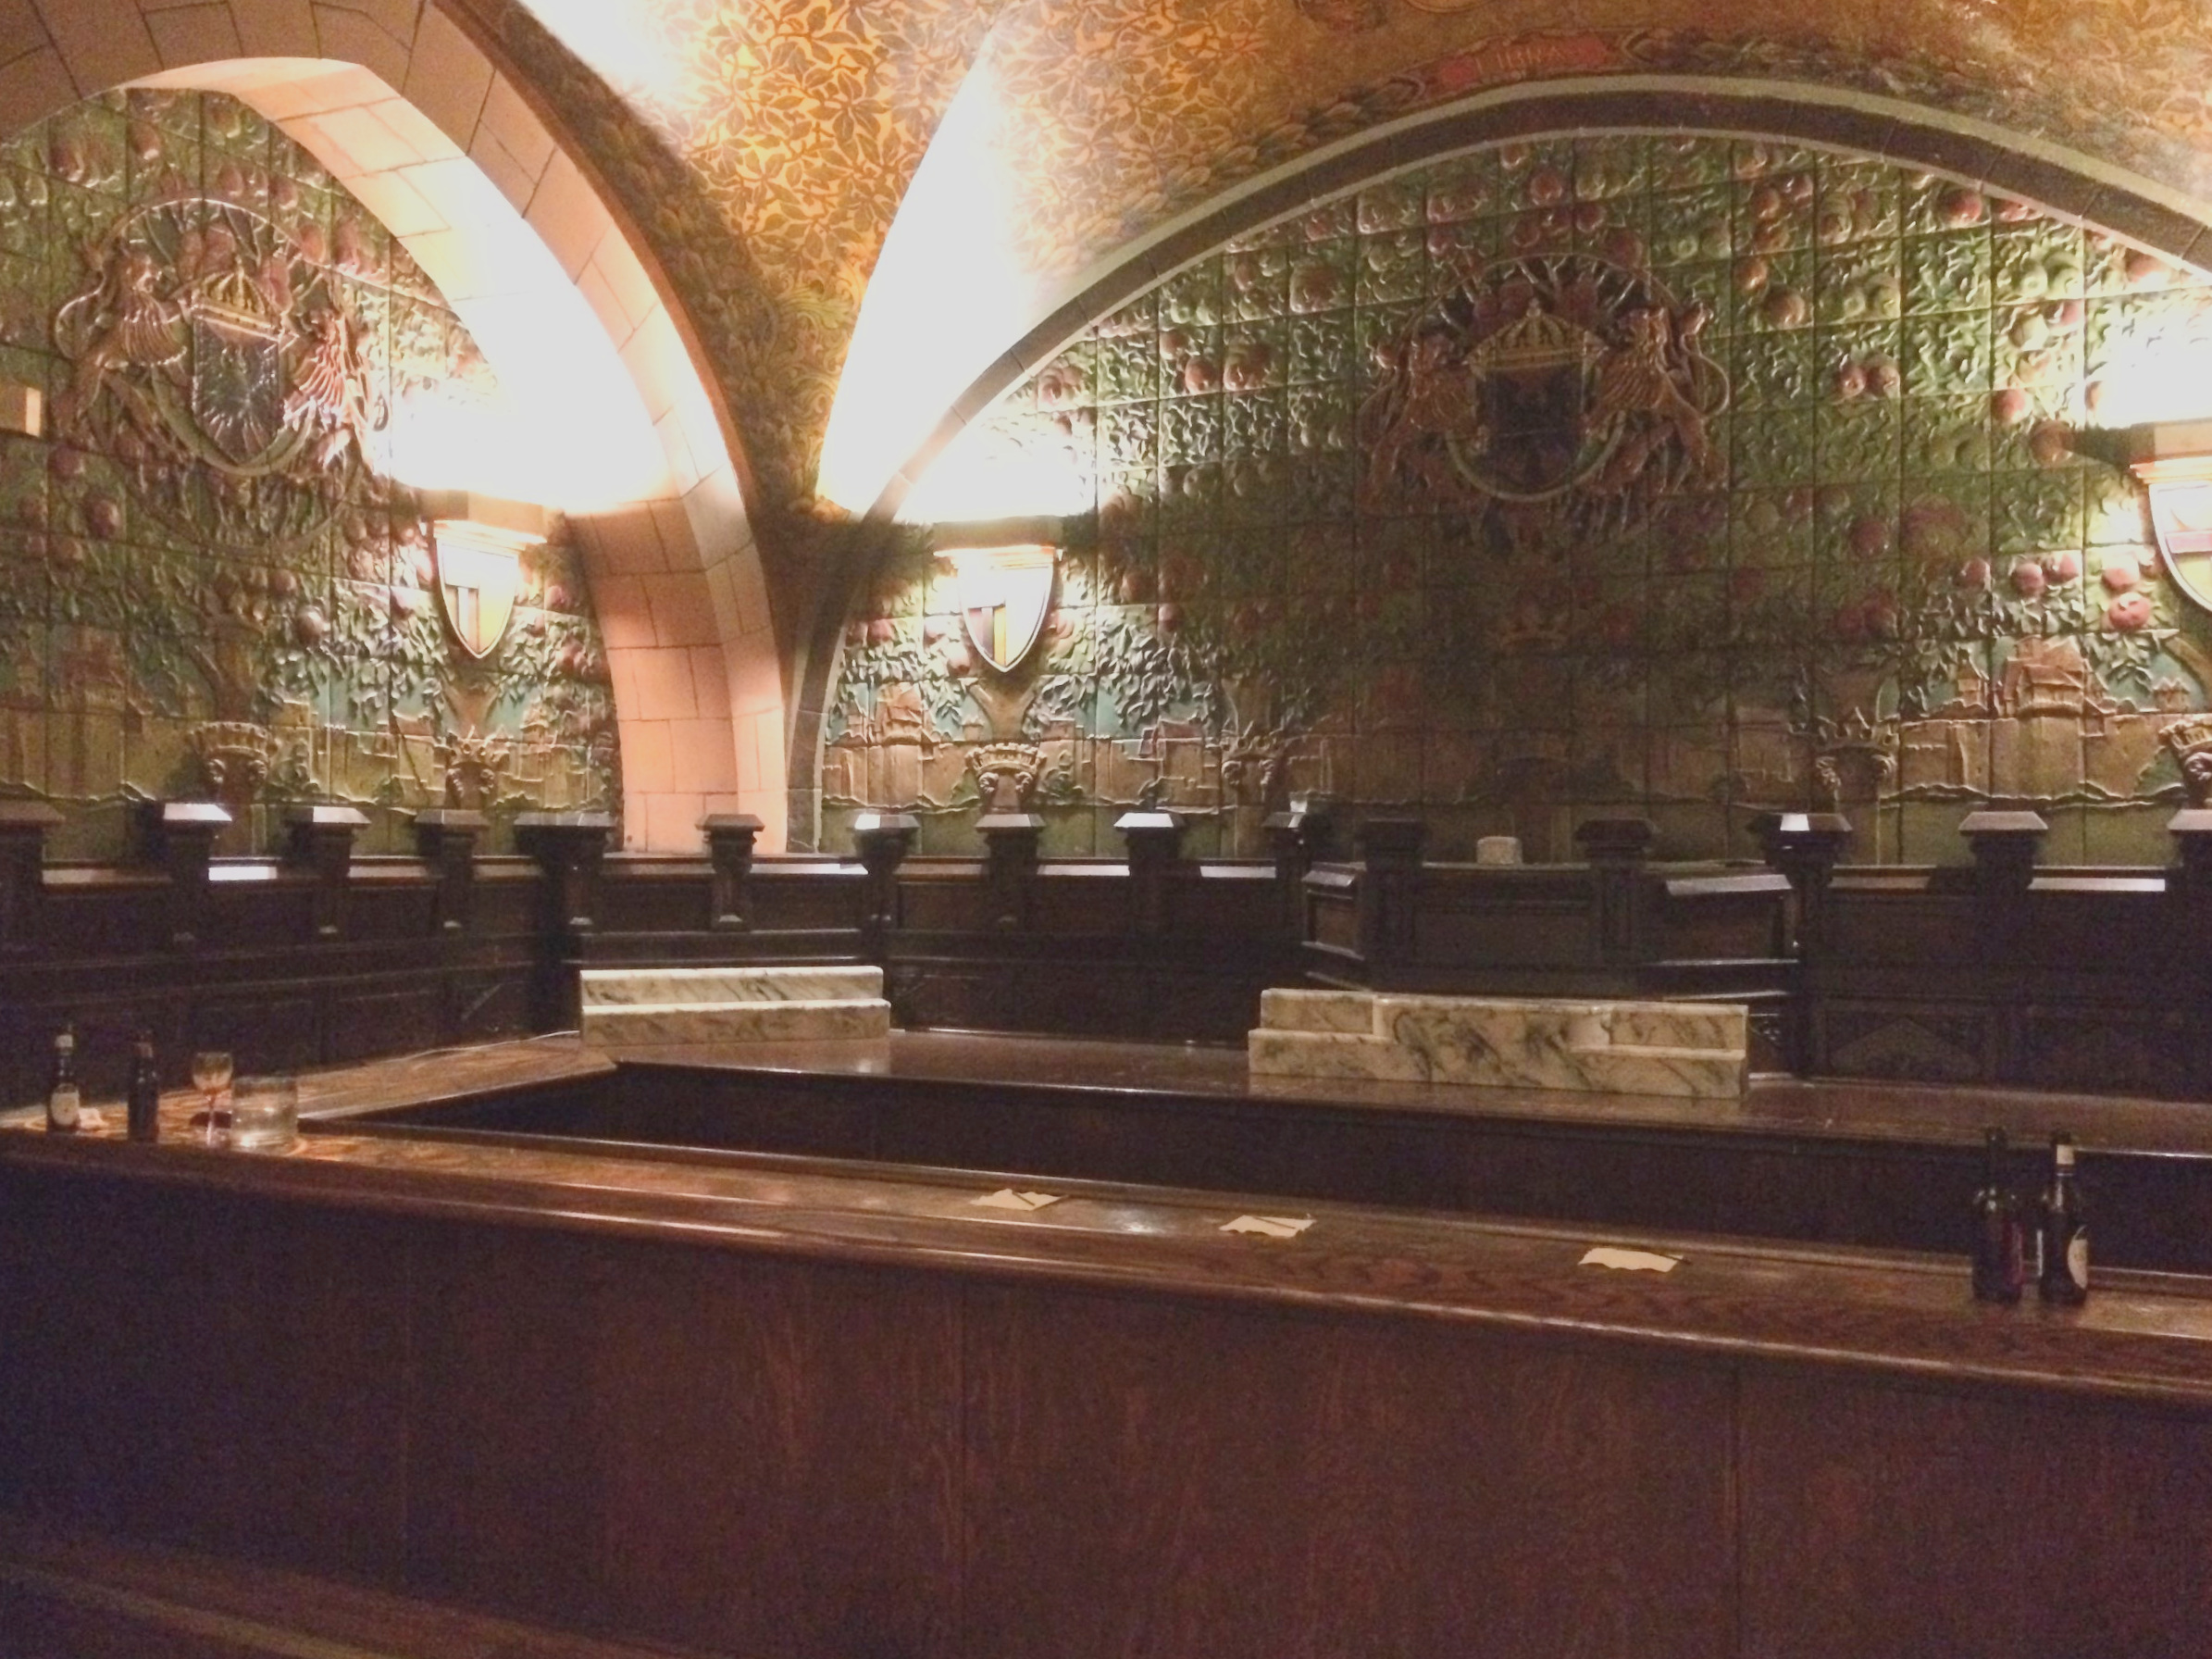 The famous Rathskeller bar in the Seelbach Hilton Hotel in downtown Louisville. Allegedly, Remus and Capone drank together at the Rookwood Pottery tile-encrusted grotto, one of the most stunning displays of Rookwood from the early twentieth century.